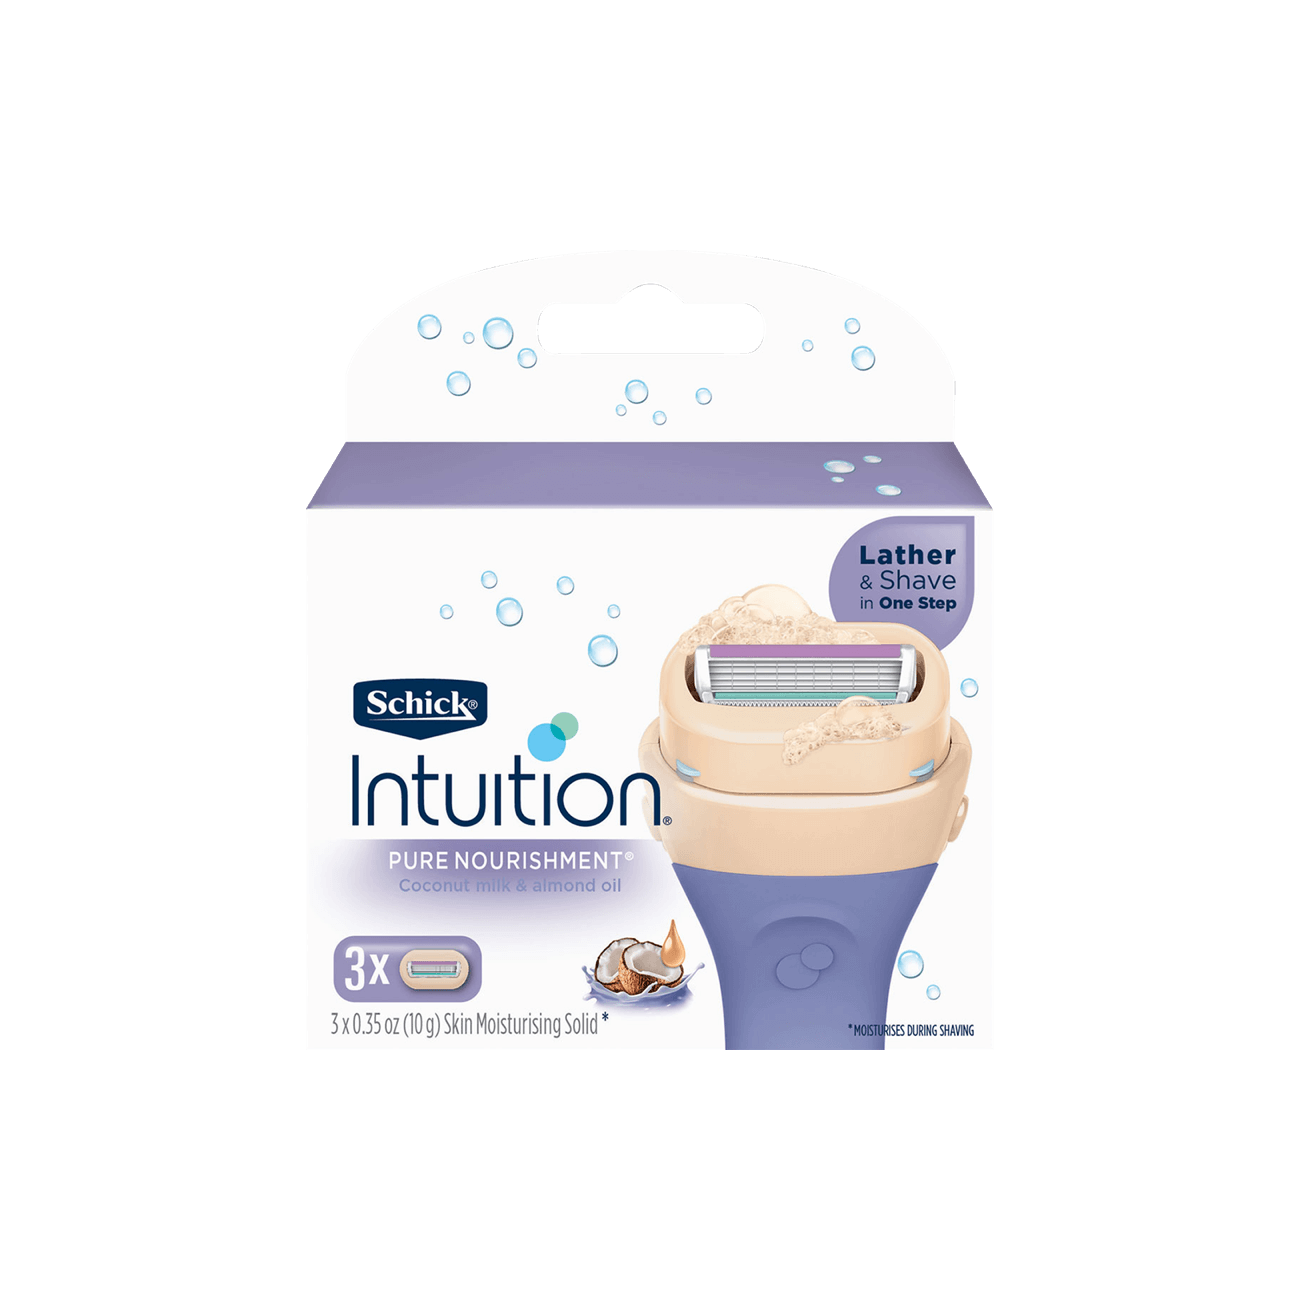 Intuition® Pure Nourishment Refills